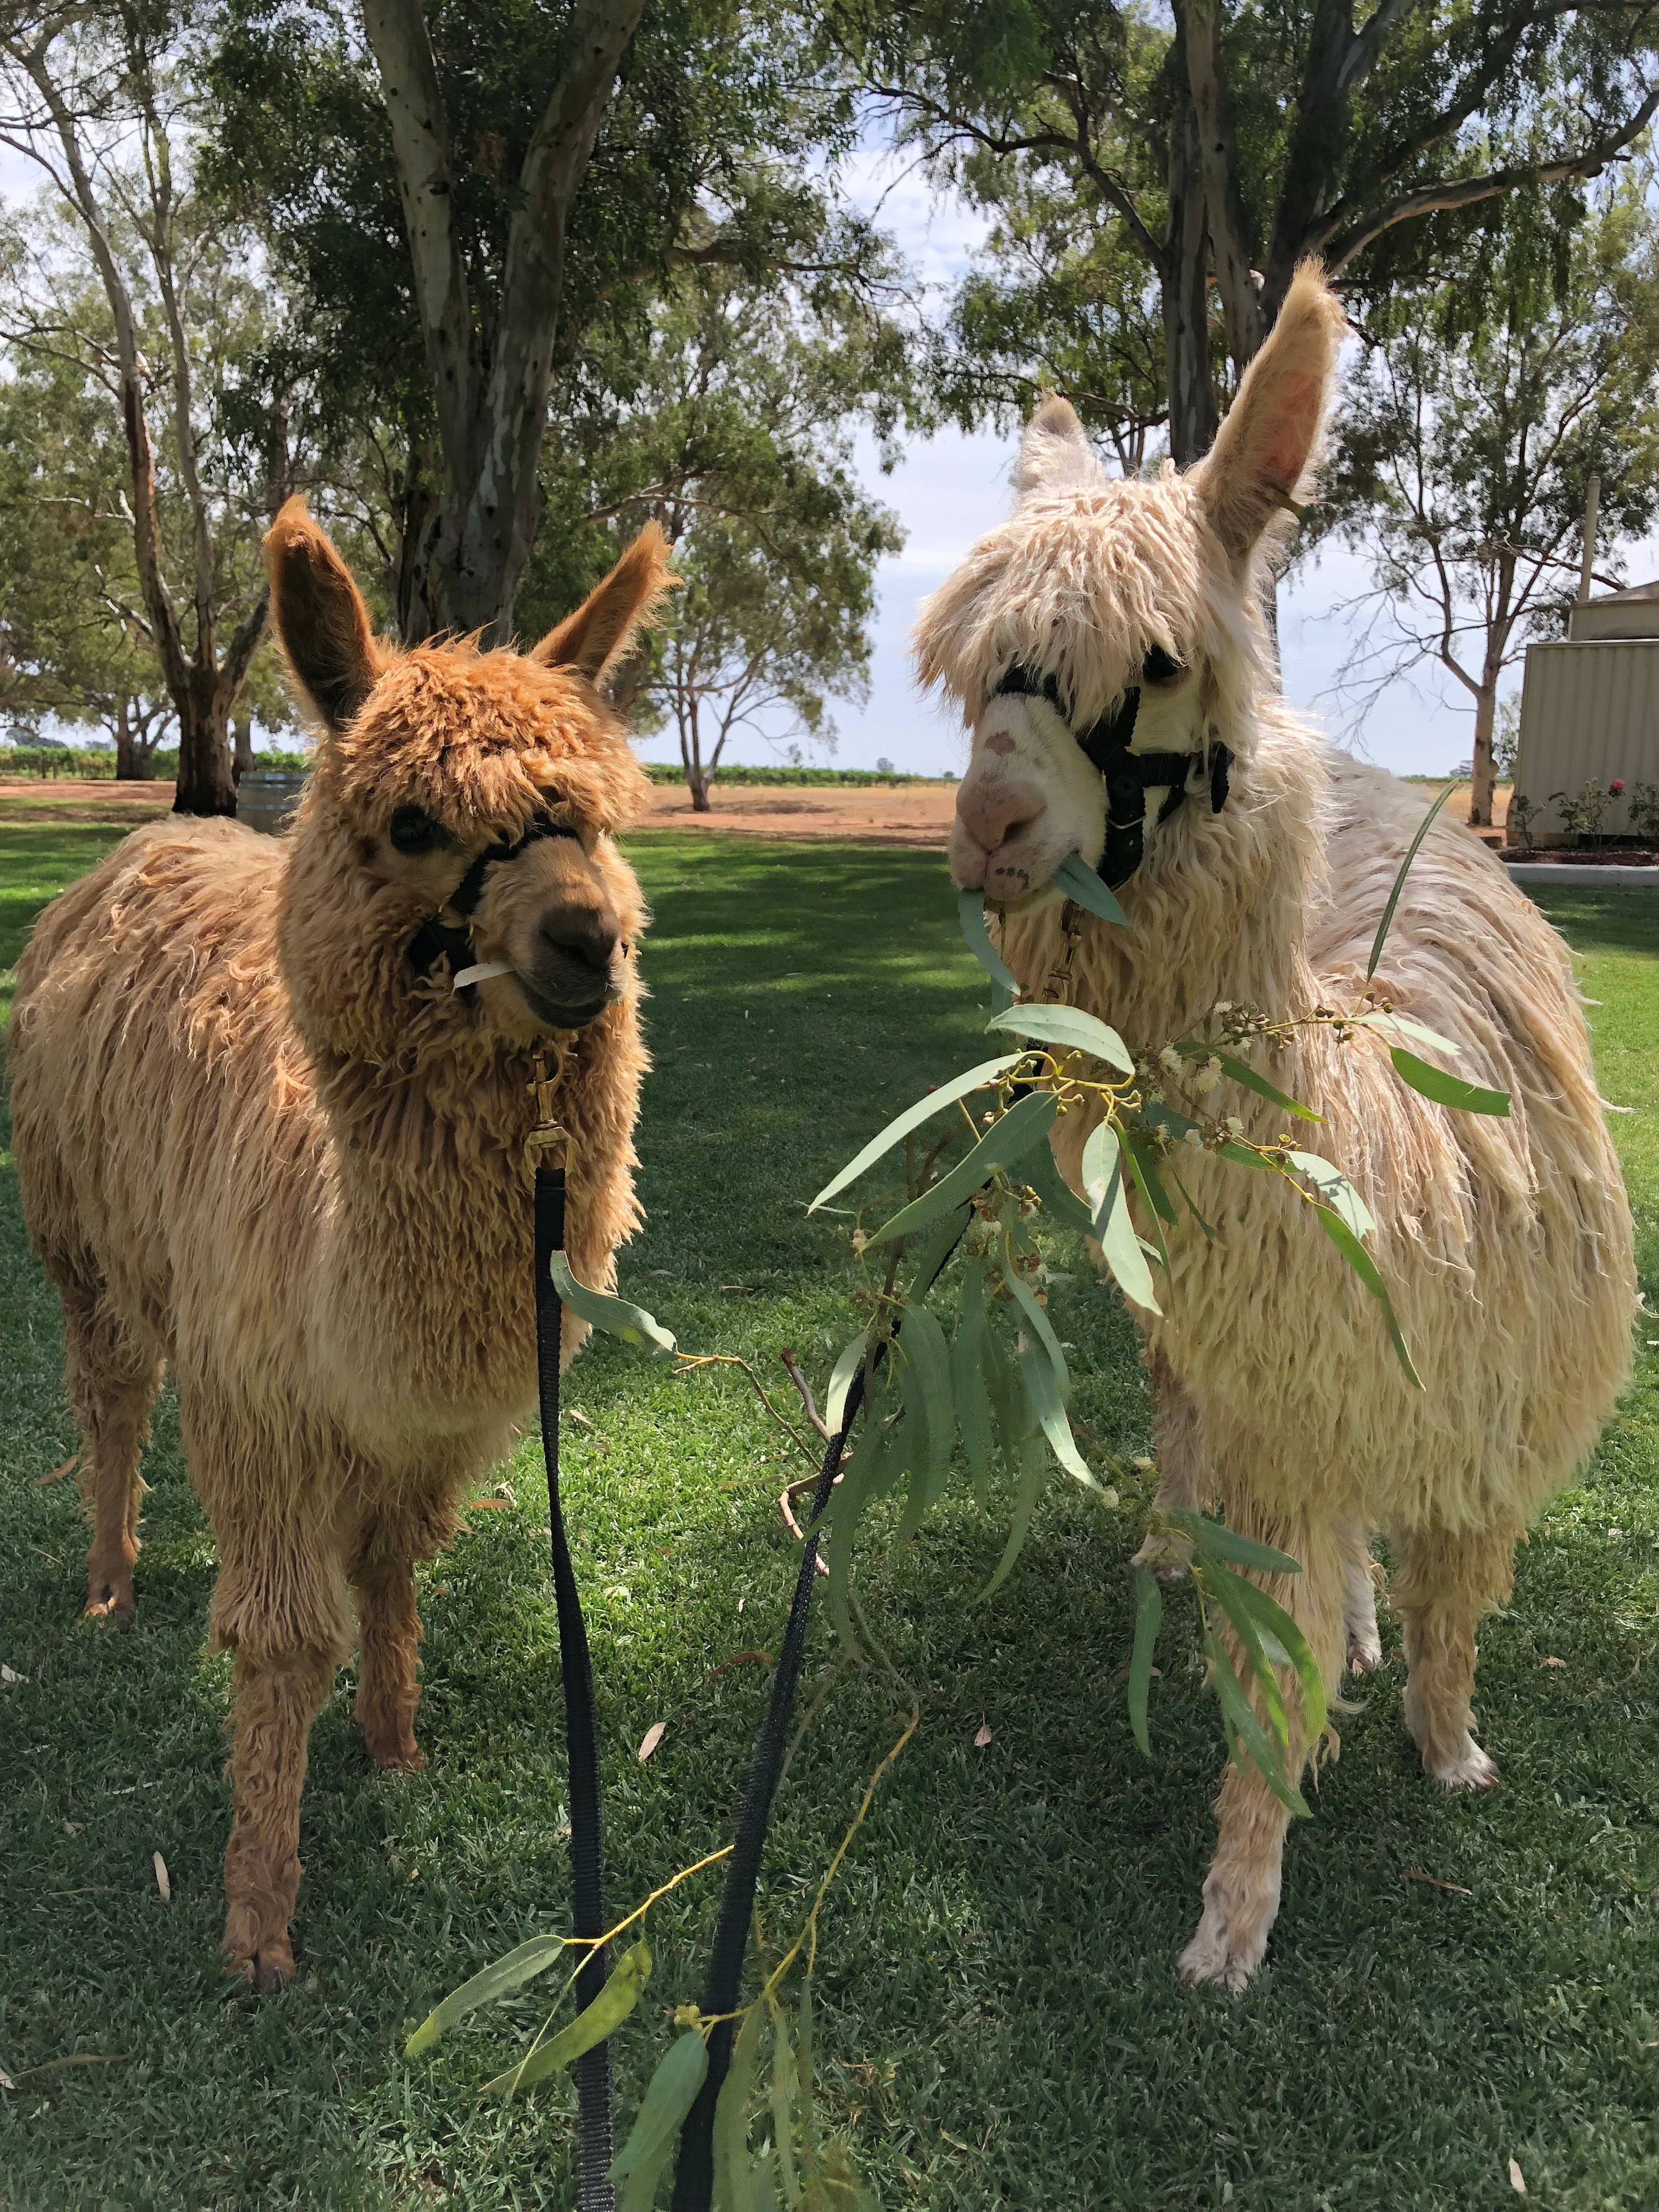 Visit an alpaca farm and get up and personal with these gentle and unique animals